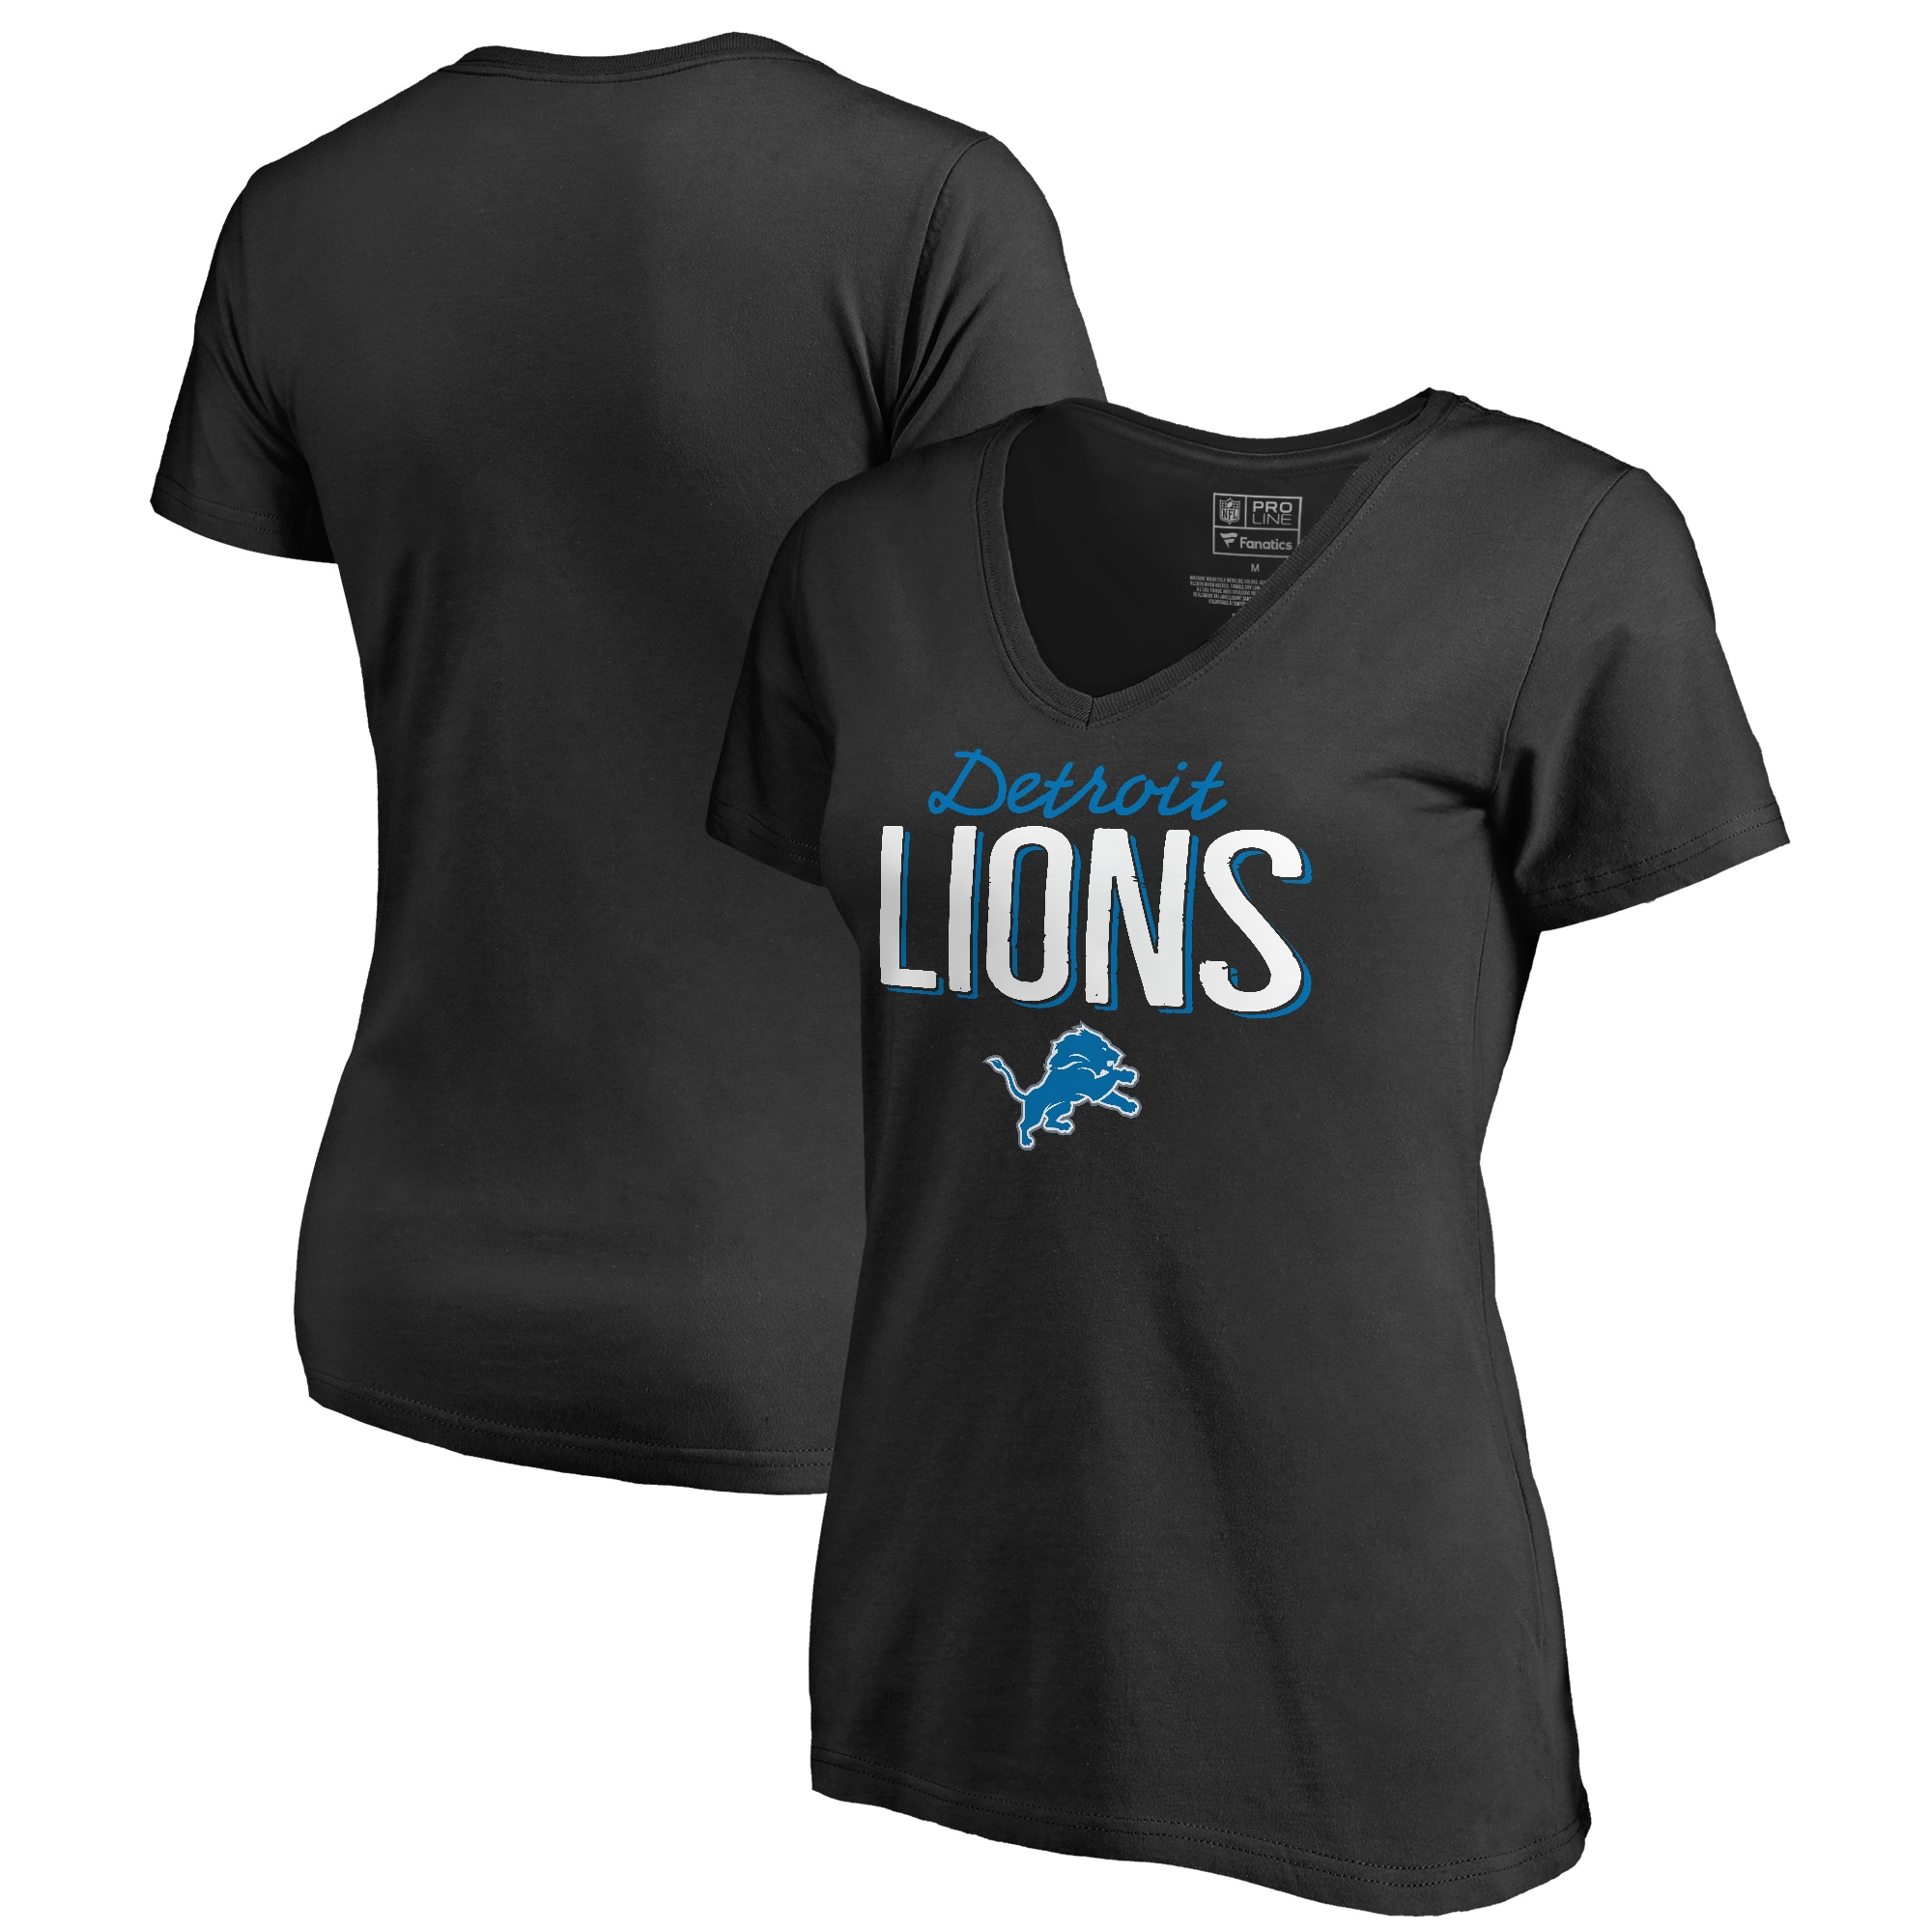 Detroit Lions NFL Pro Line by Fanatics Branded Women's Plus Sizes Nostalgia T-Shirt - Black